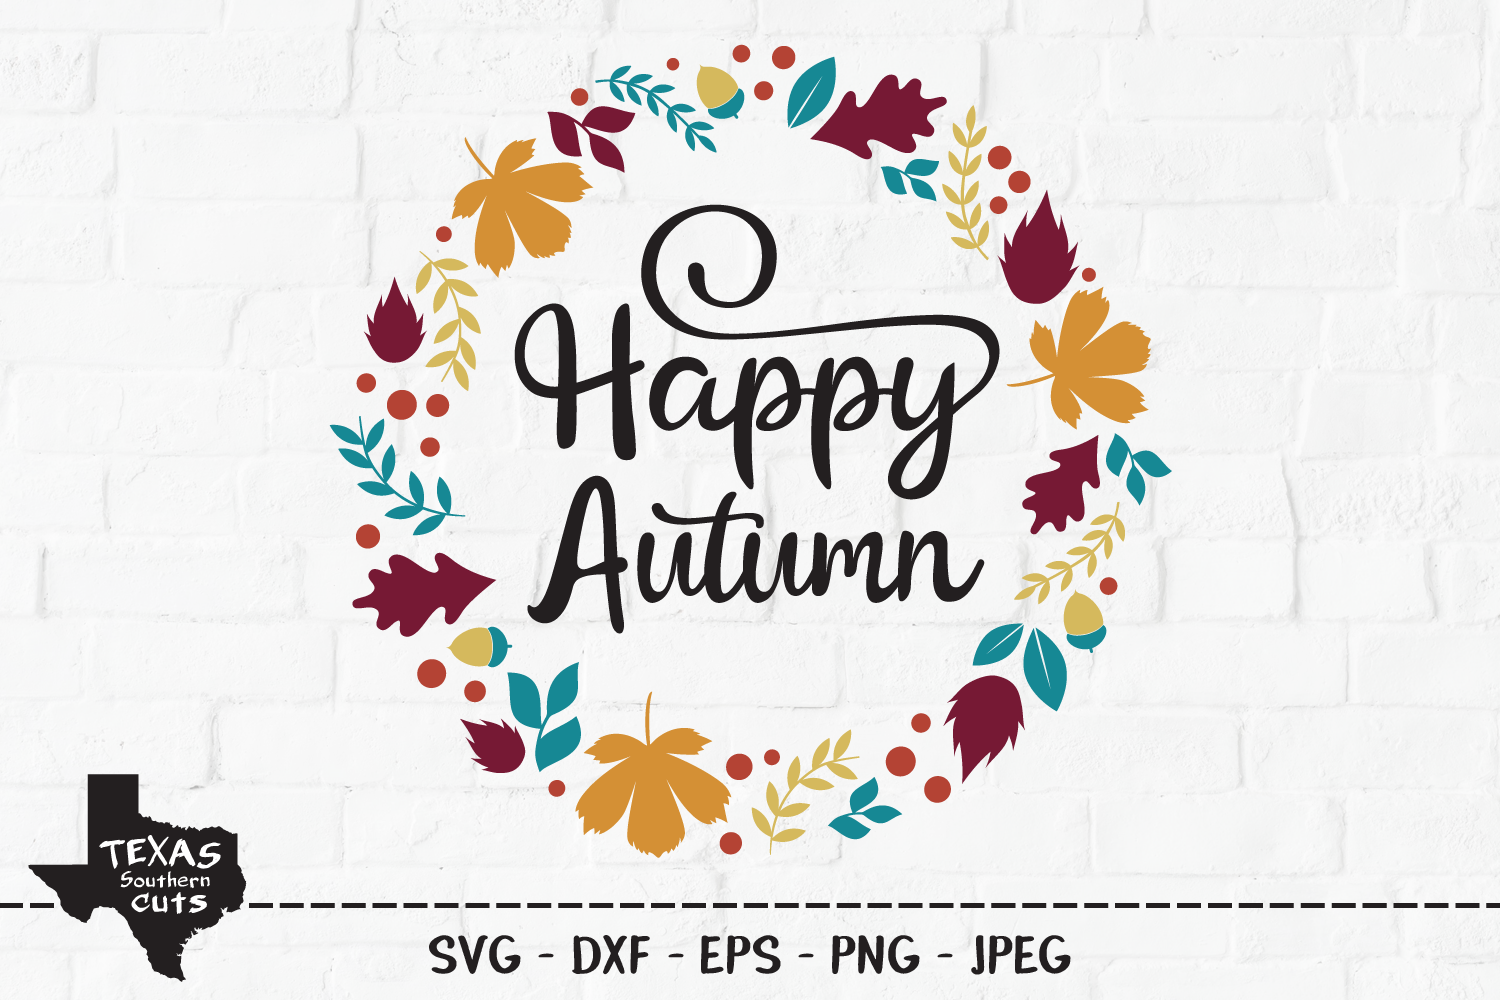 Download Free Happy Autumn Wreath Design Graphic By Texassoutherncuts for Cricut Explore, Silhouette and other cutting machines.